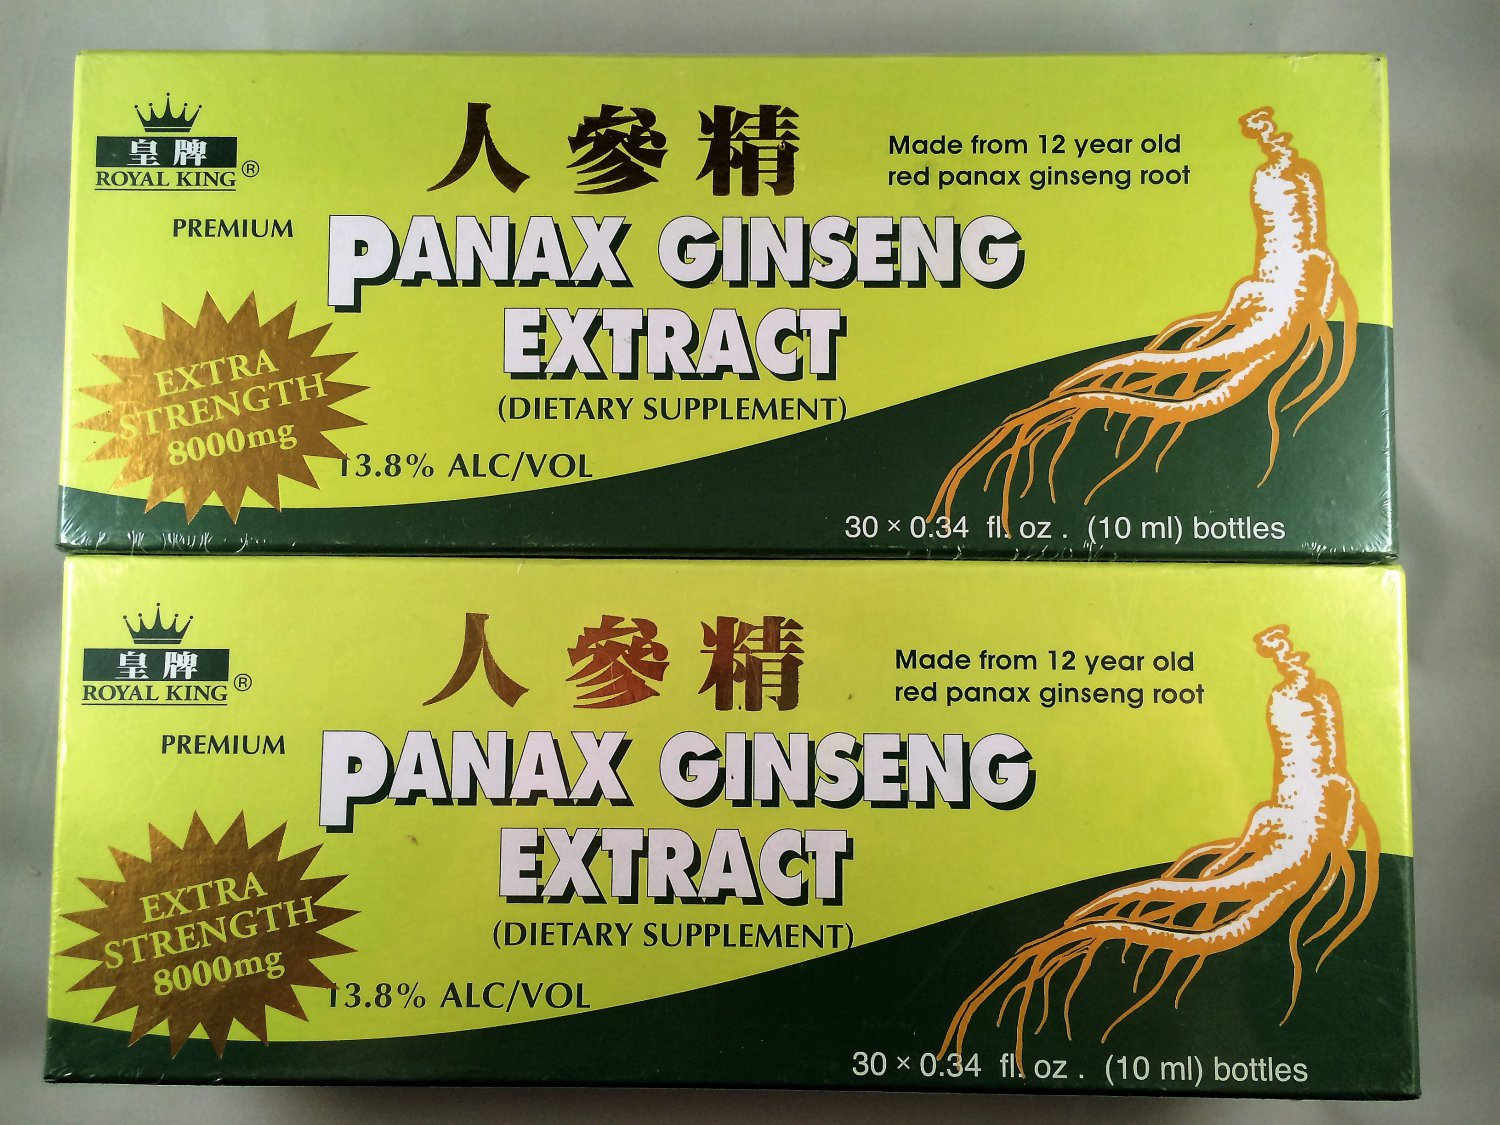 Royal King Panax Ginseng Extract 8000mg Extra Strength (contains 13.8% alcohol)90 Bottles